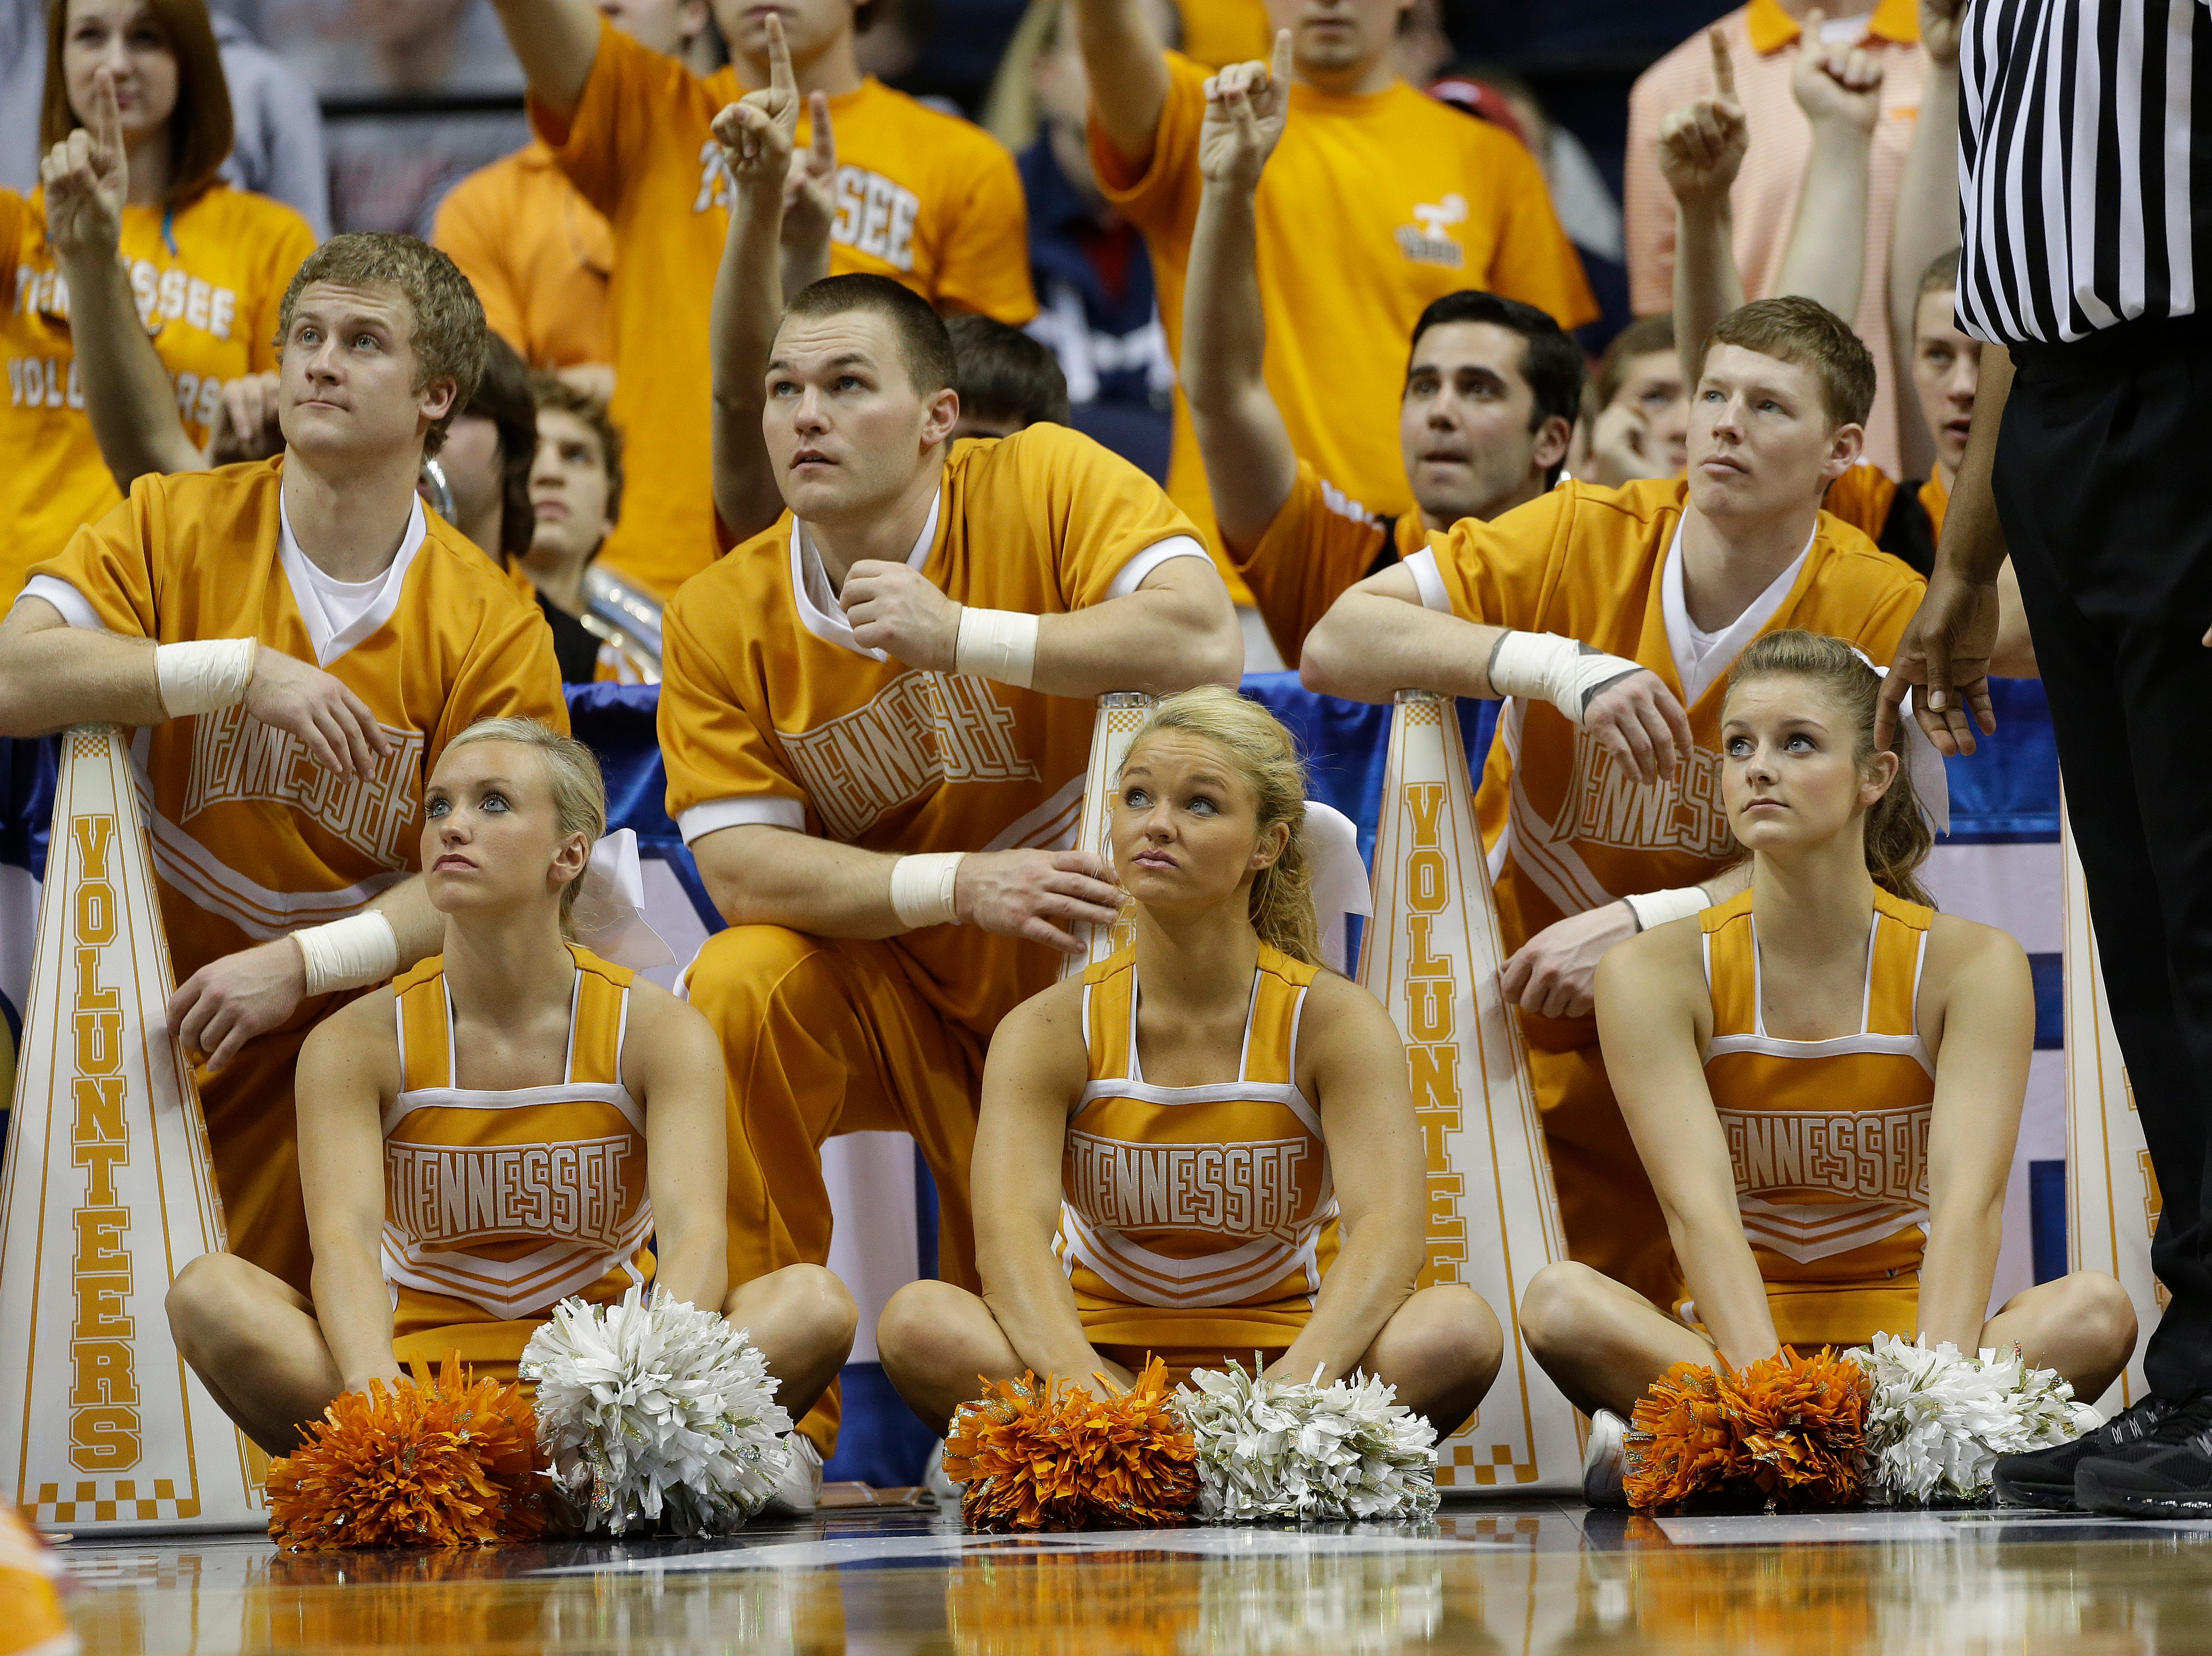 Tennessee cheerleaders watch the closing minutes of the second half of an NCAA college basketball game against Alabama at the Southeastern Conference tournament, Friday, March 15, 2013, in Nashville, Tenn. Alabama won 58-48. (AP Photo/Dave Martin)